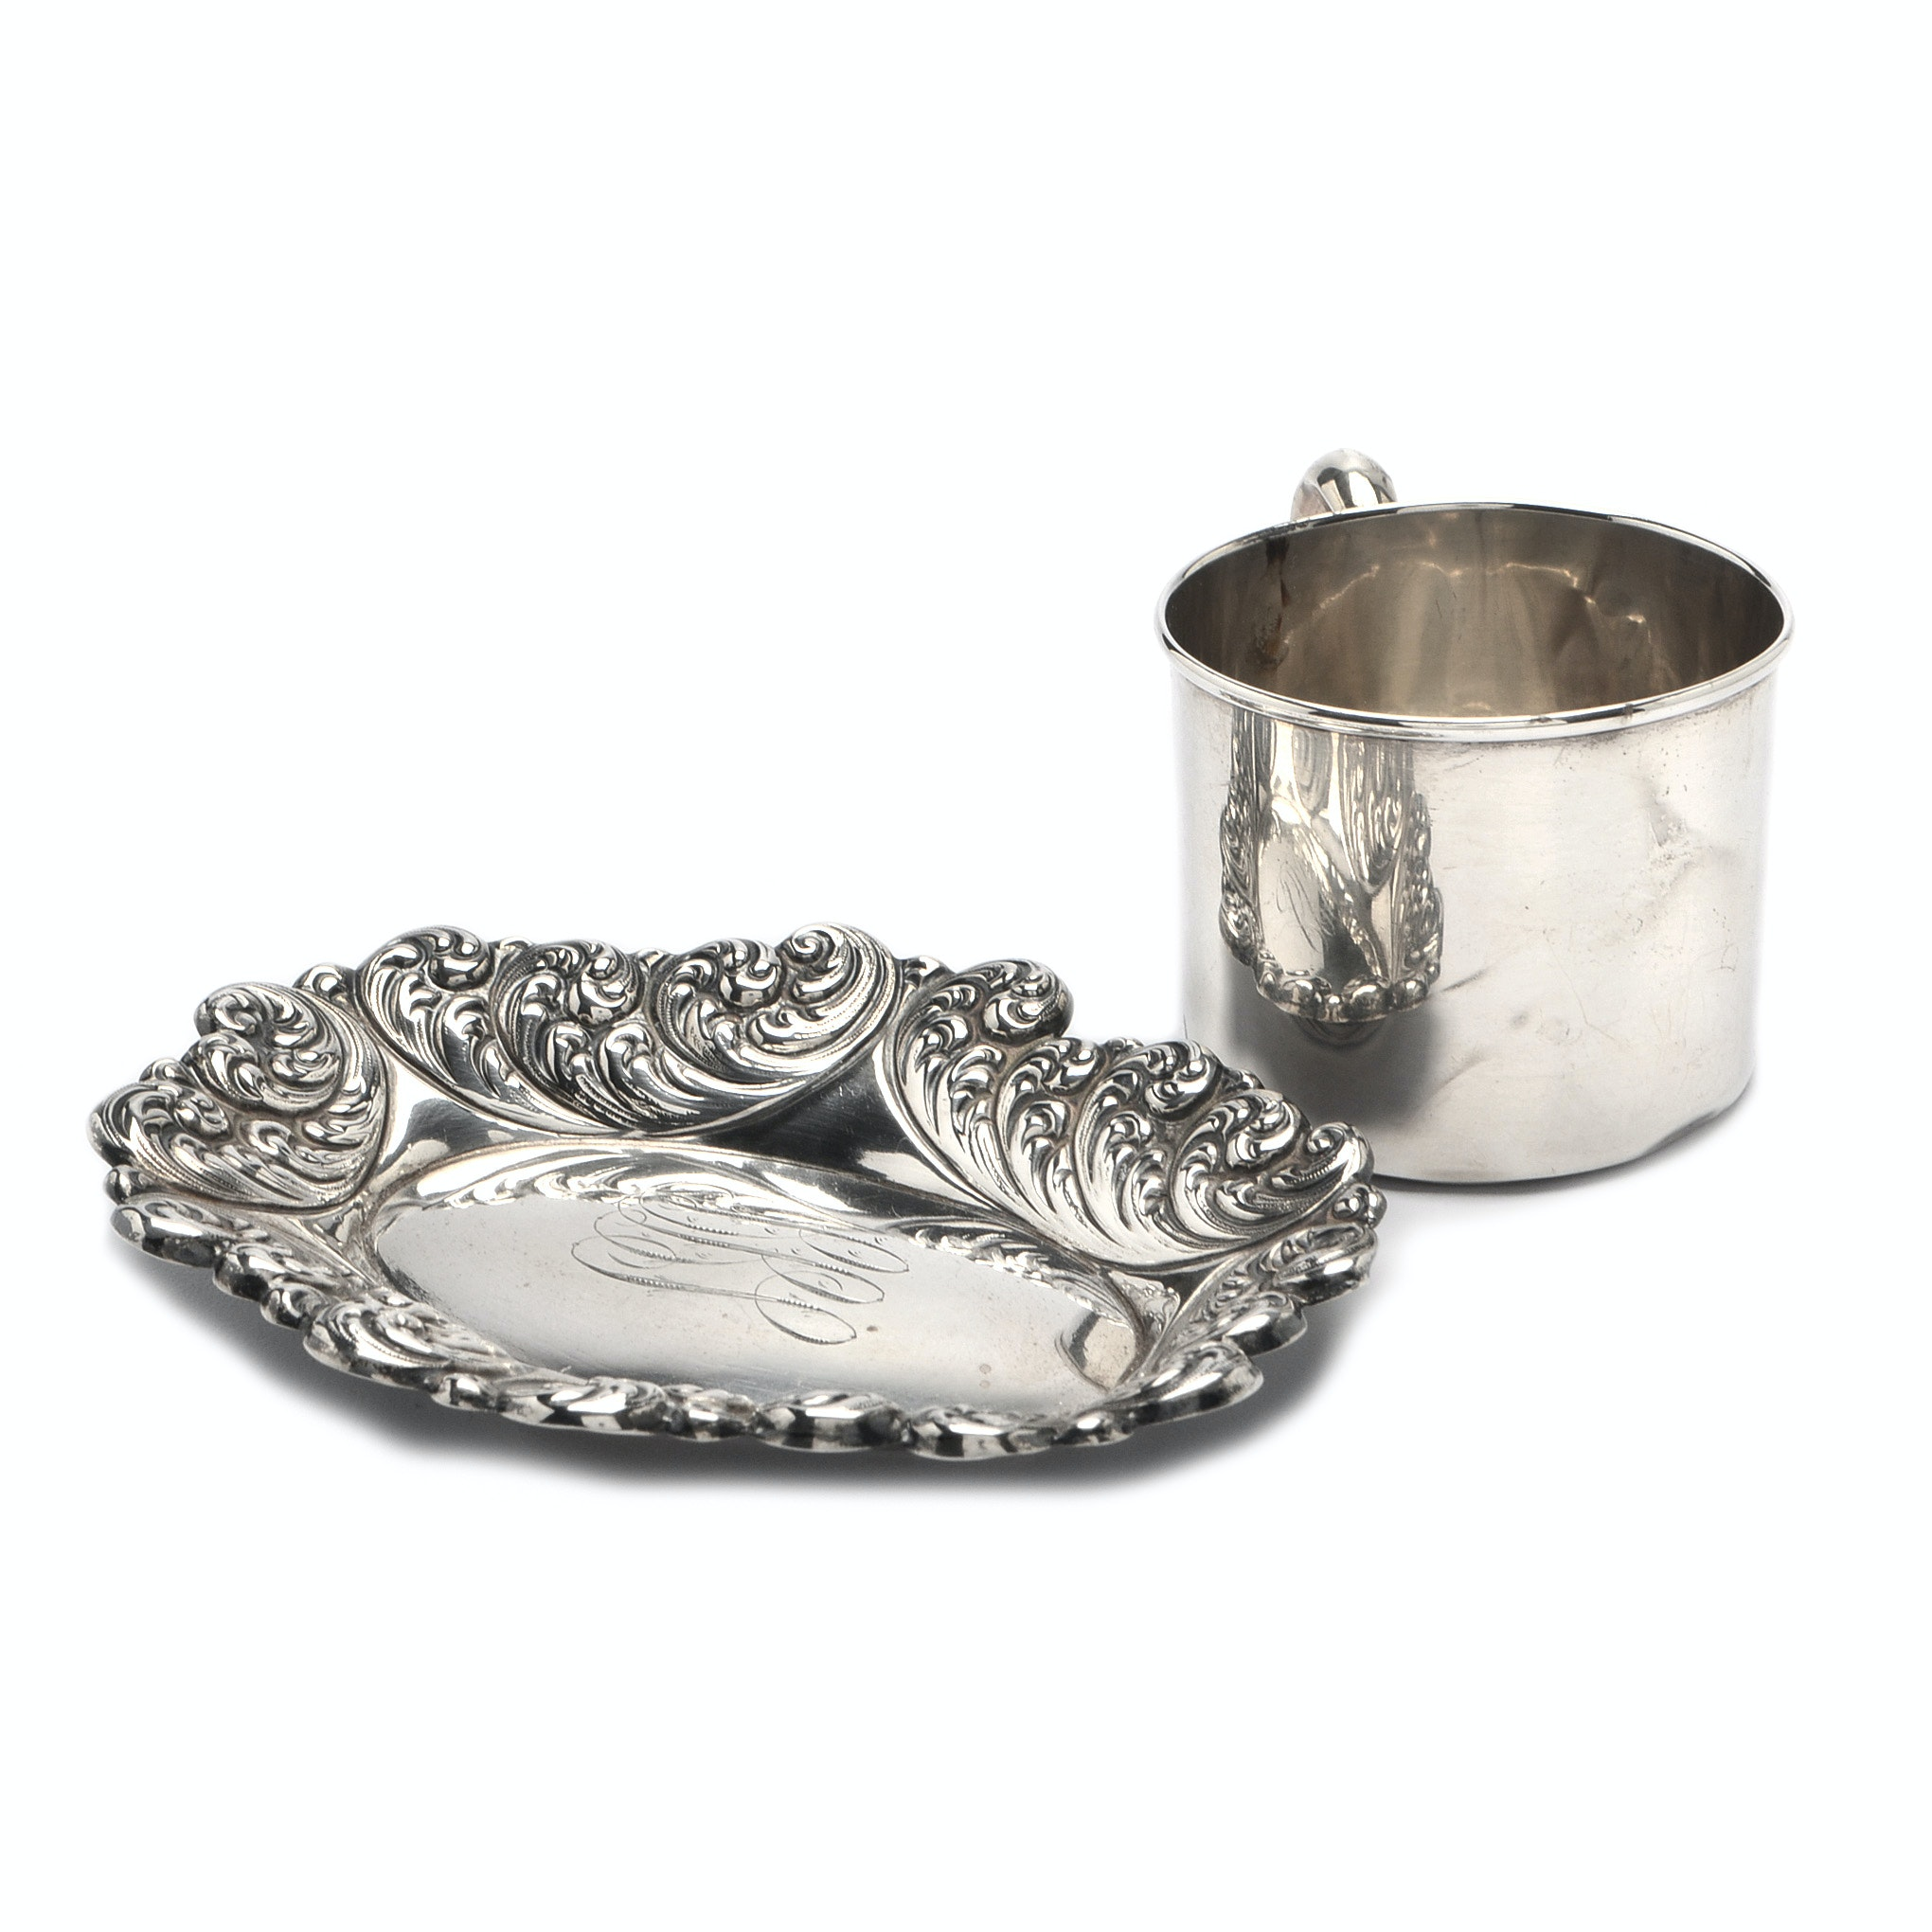 Simons Brothers Oval Sterling Silver Dish and Webster Cup